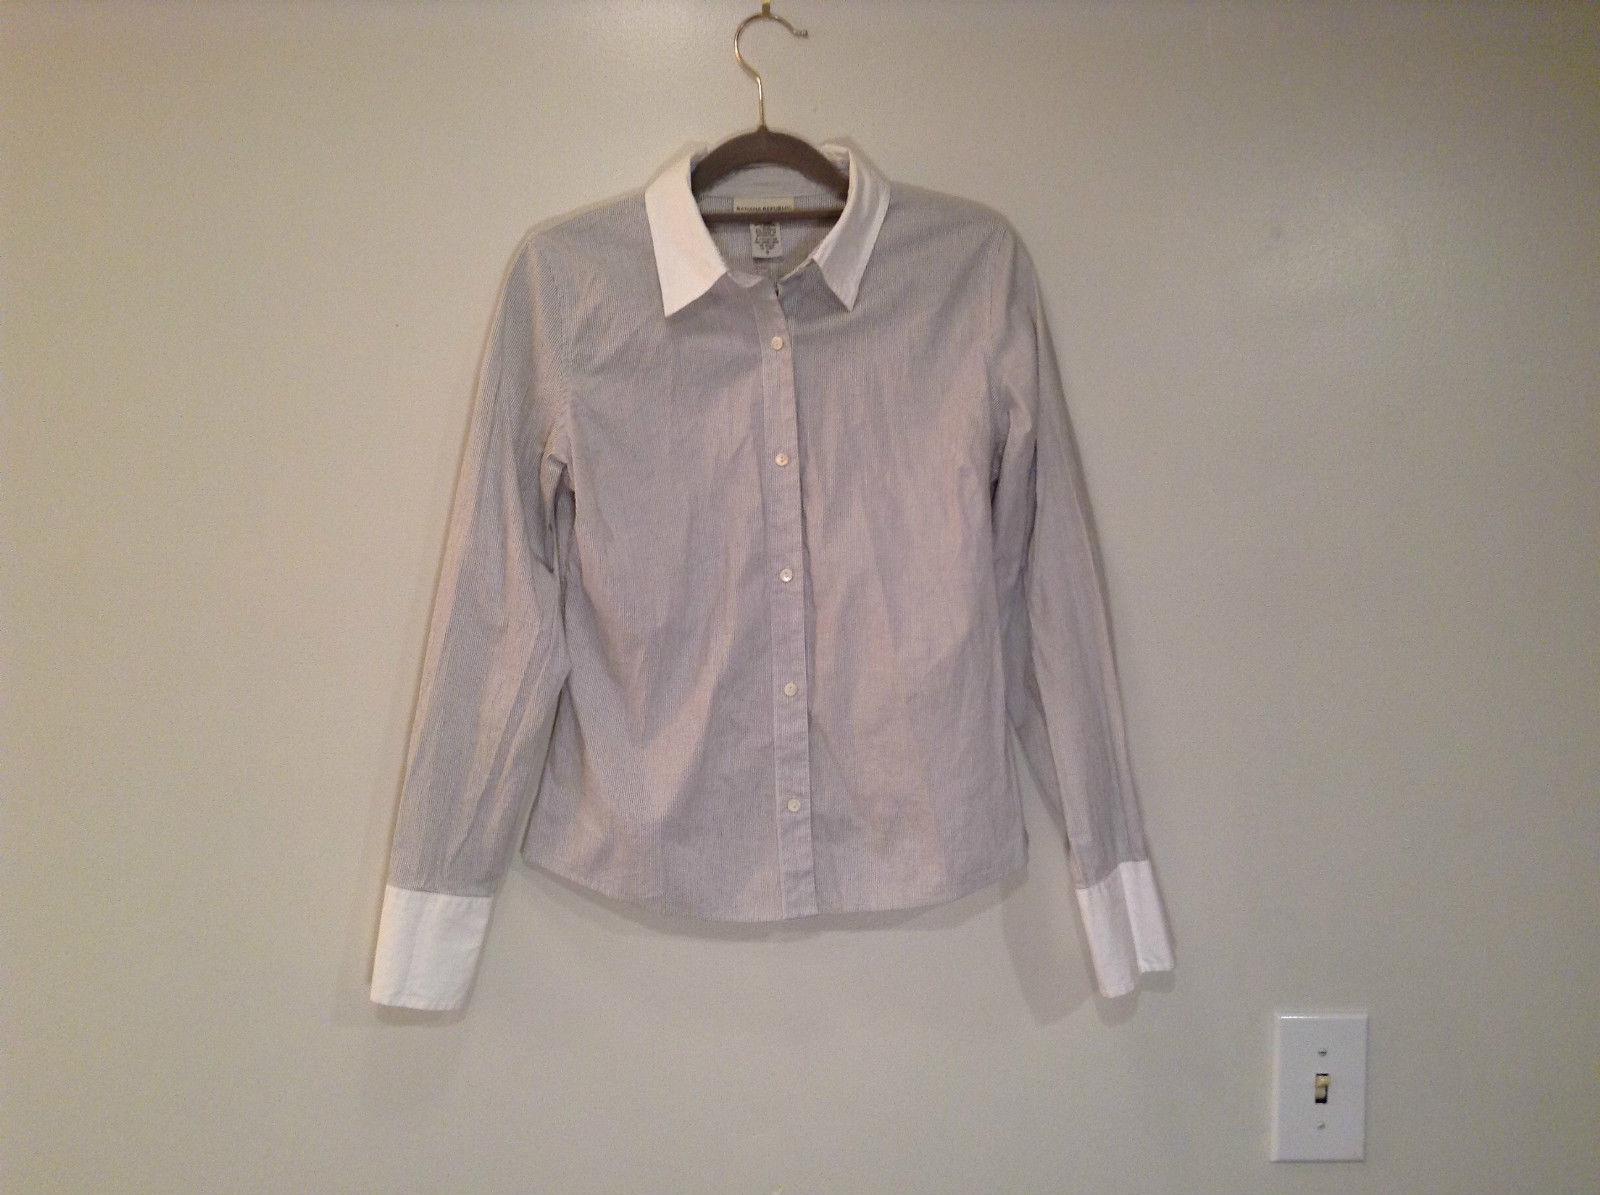 Banana Republic Long Sleeve Button Up Shirt White with Blue Stripes Size Small